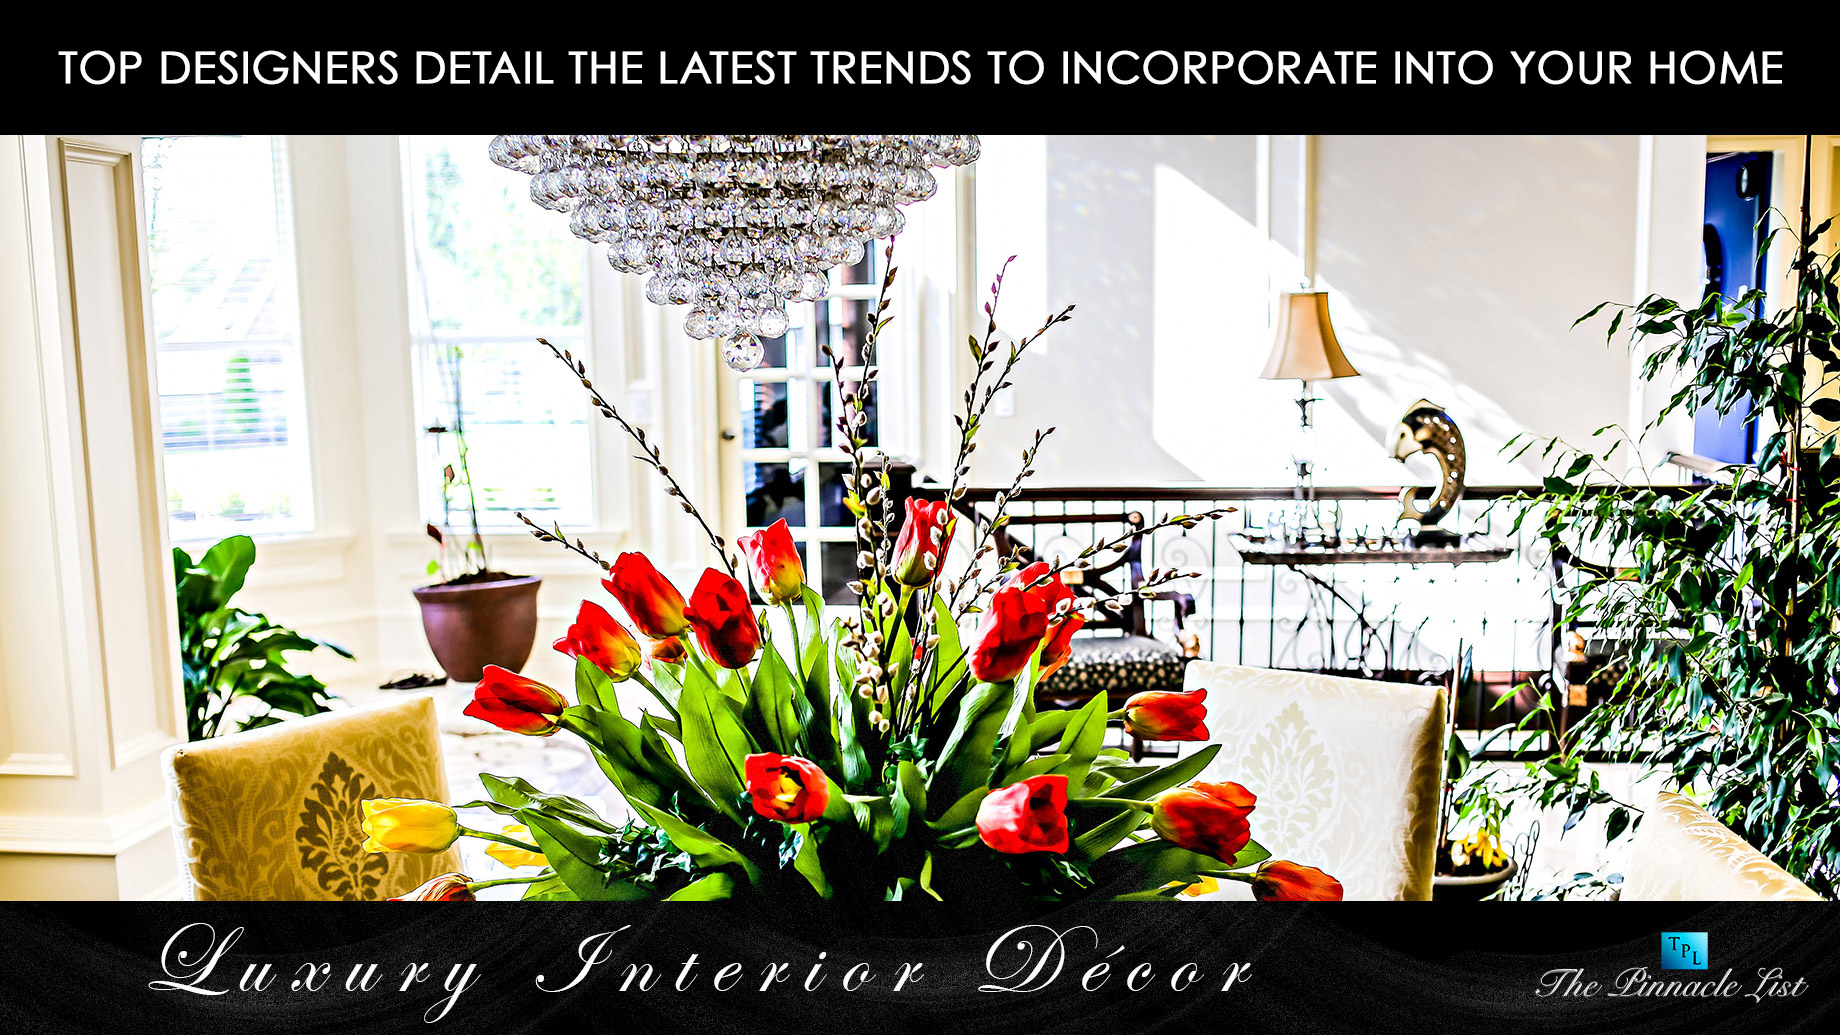 Luxury Interior Décor - Top Designers Detail the Latest Trends to Incorporate Into Your Home